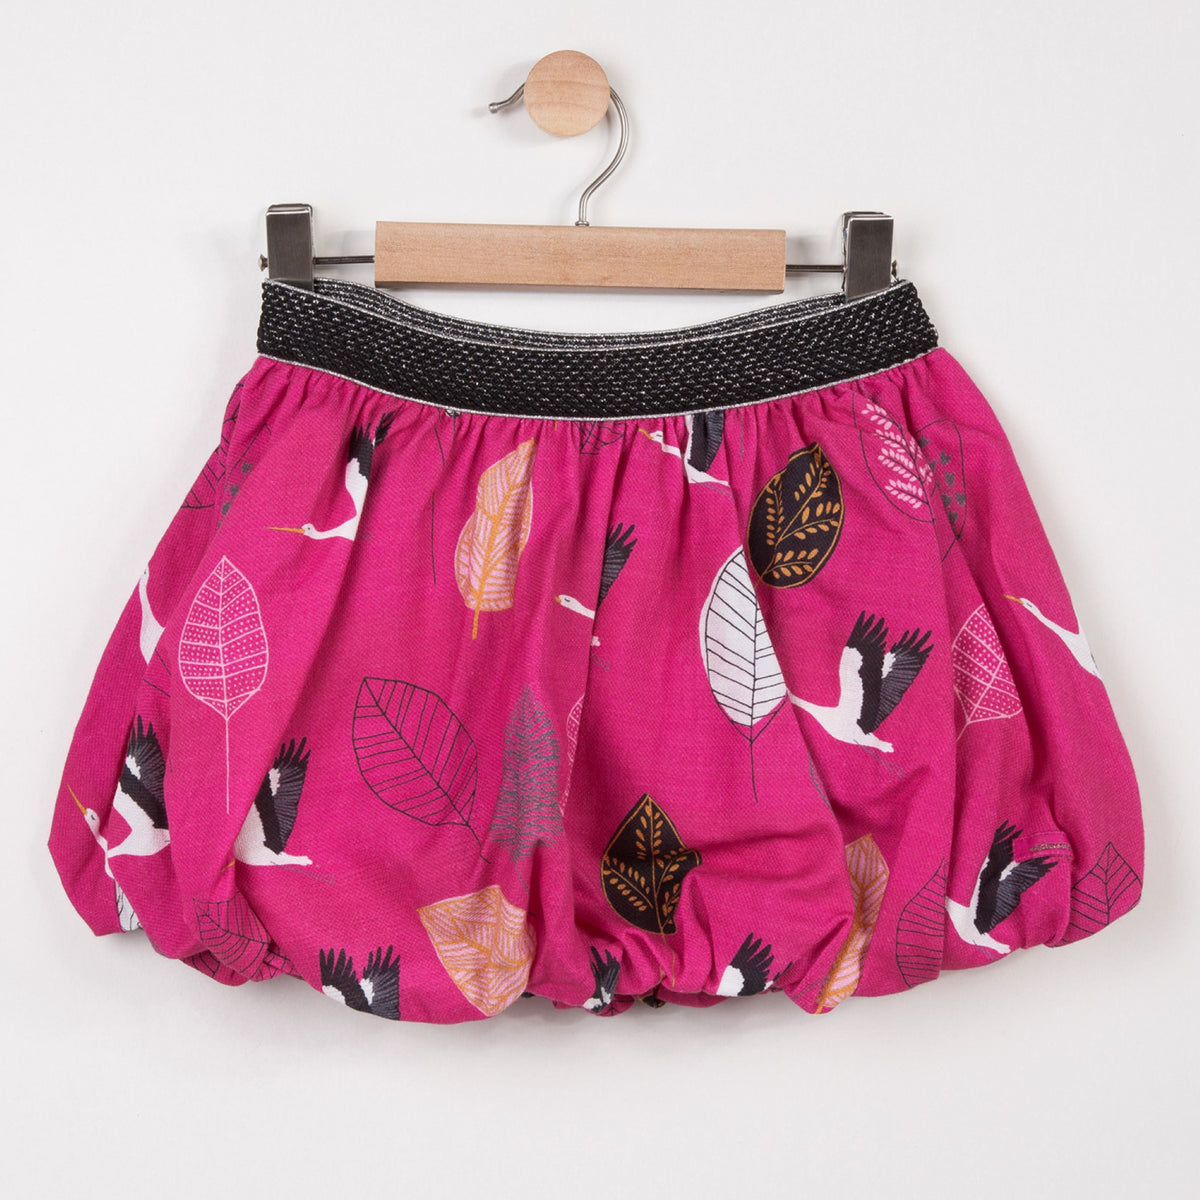 Catimini short bubble skirt in fuchsia with a stork print on a crepe lined bottom and elastic waistband.